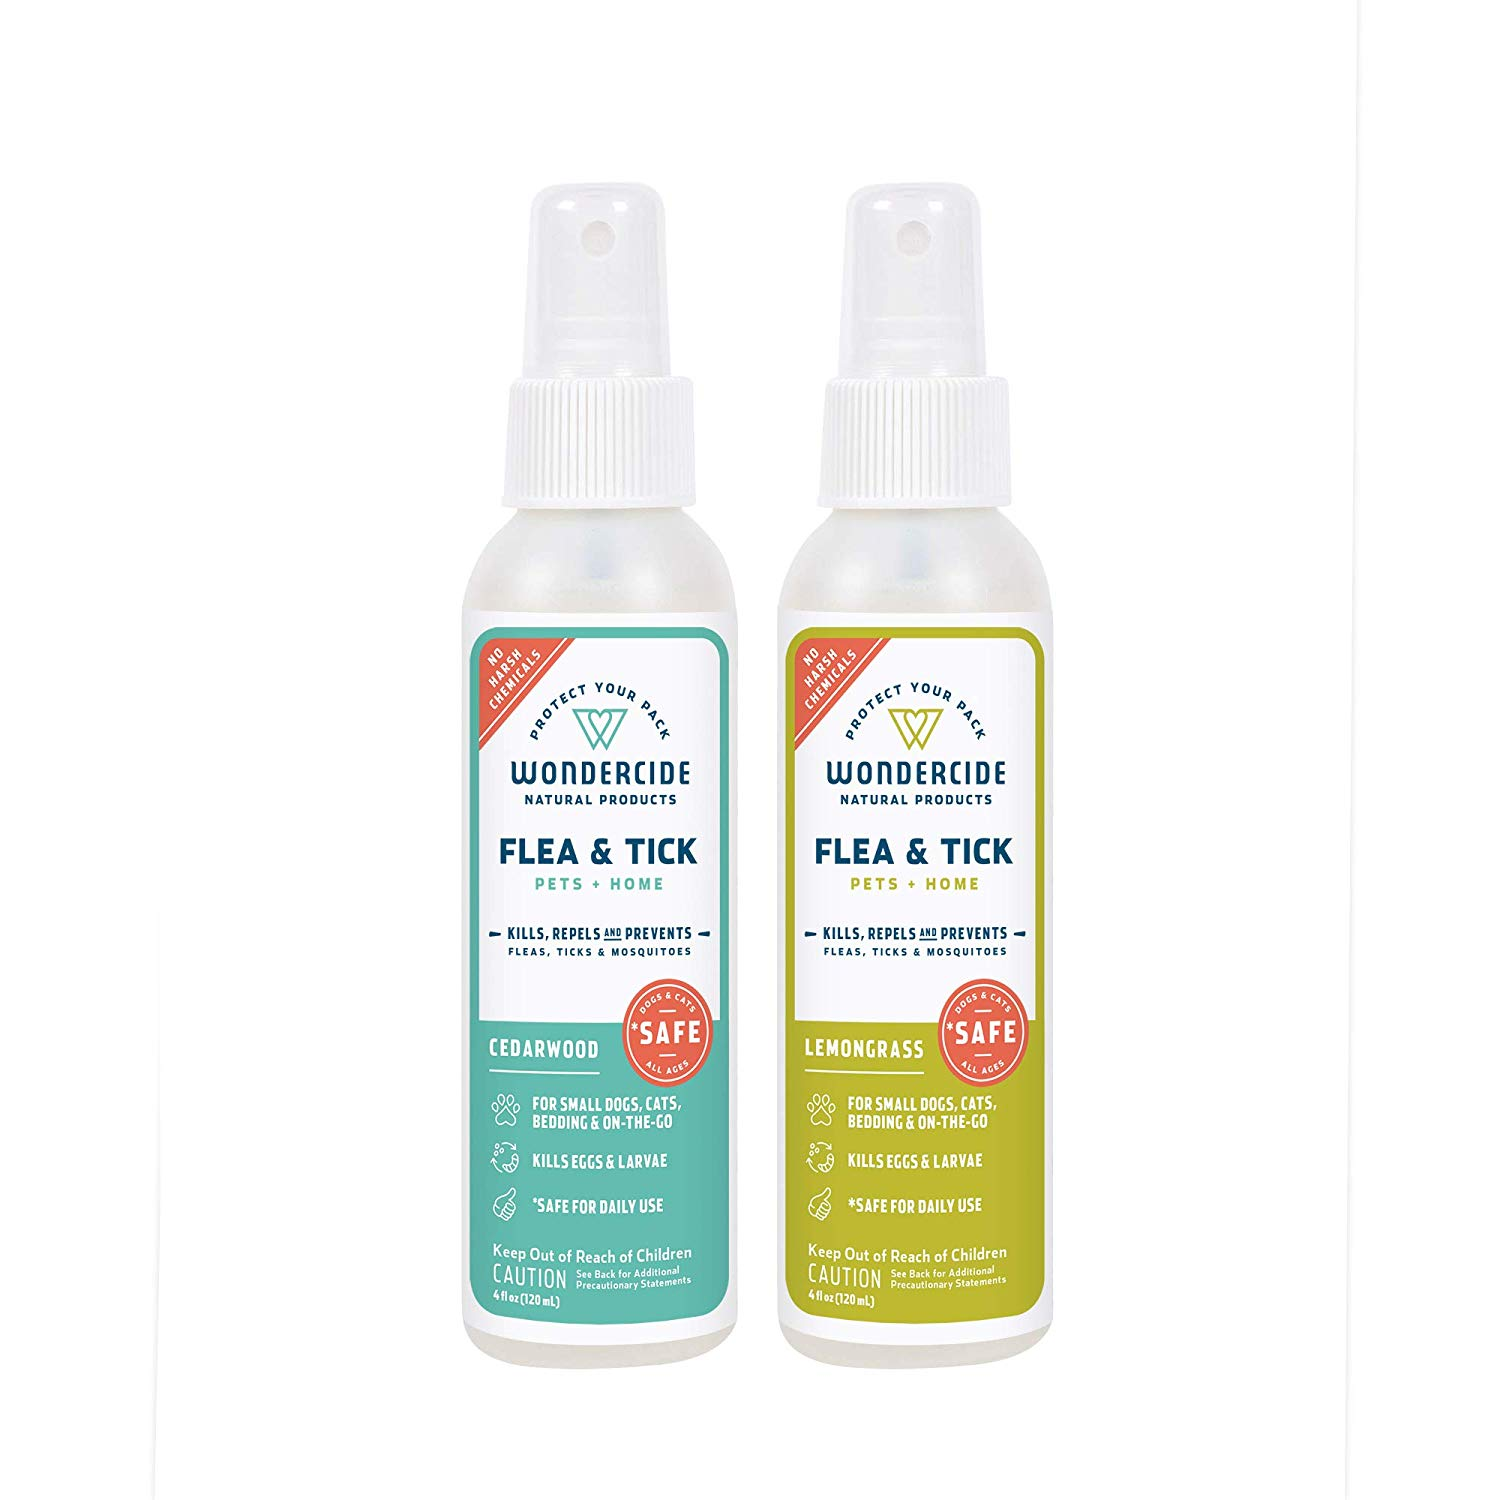 Best Natural Preventive Spray: Wondercide Flea, Tick & Mosquito Control Spray for Cats Dogs & Home